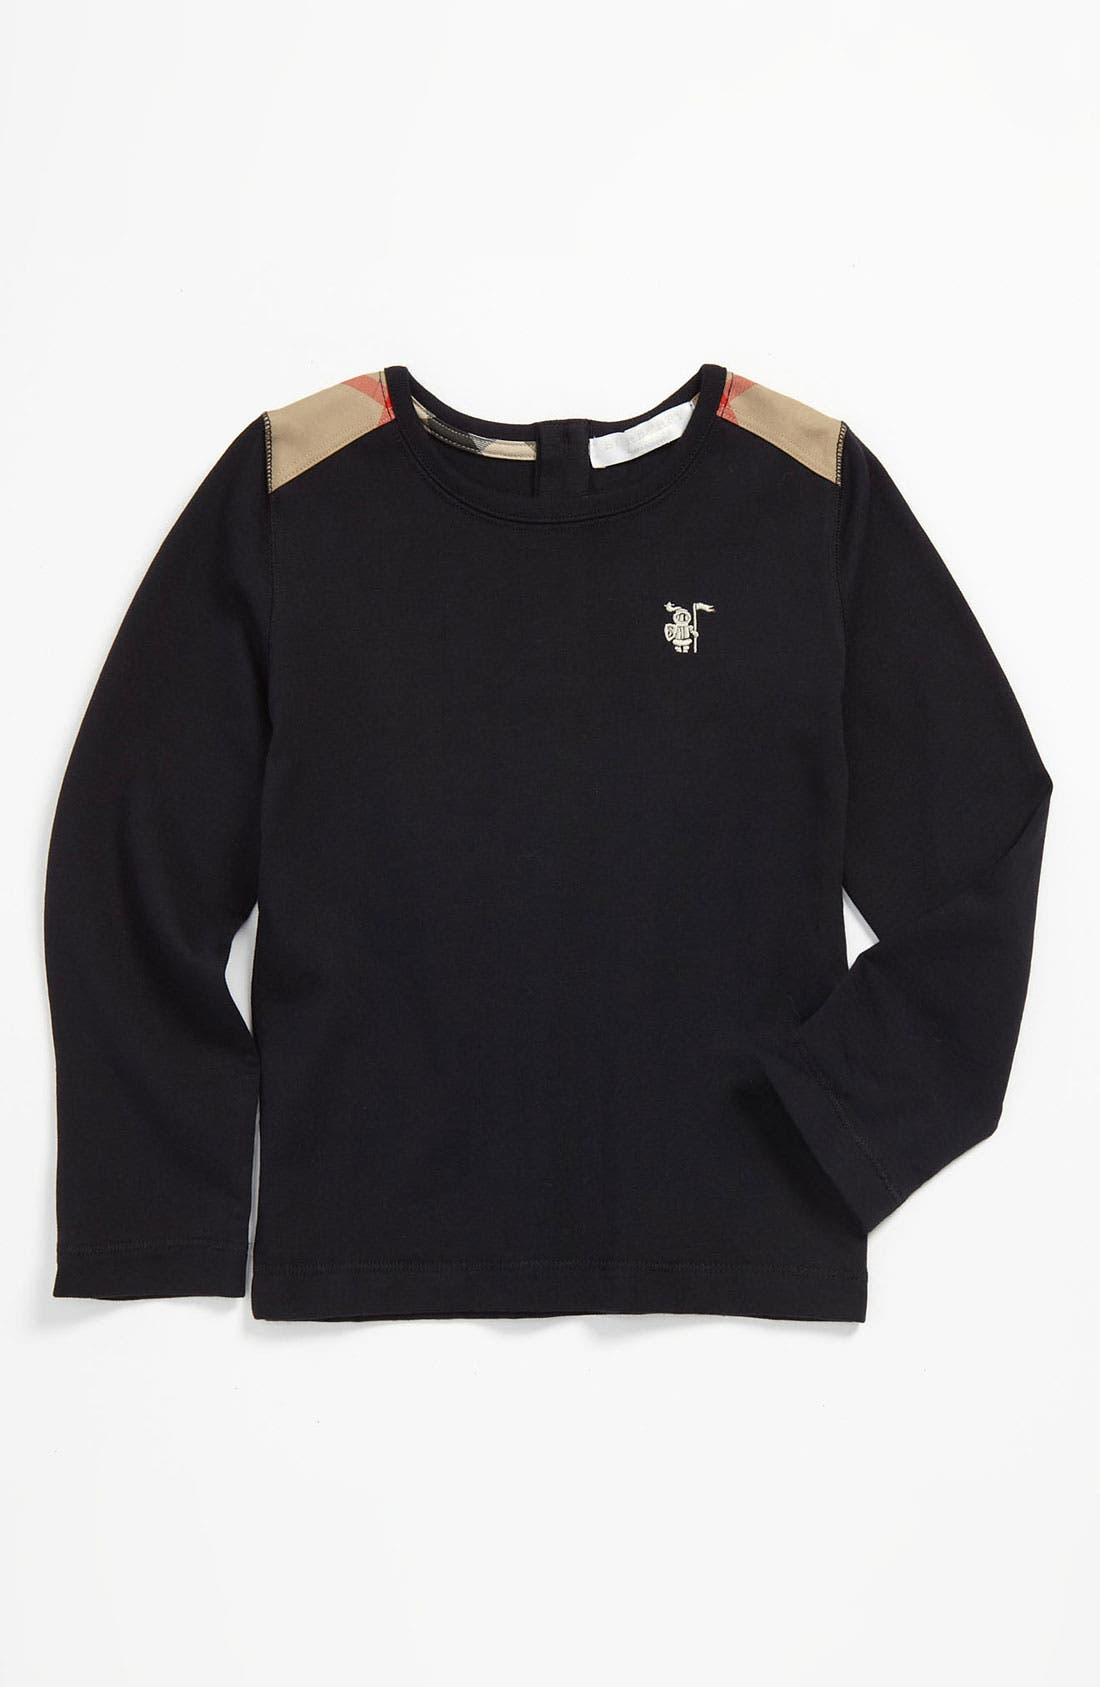 Alternate Image 1 Selected - Burberry Shoulder Patch T-Shirt (Infant)